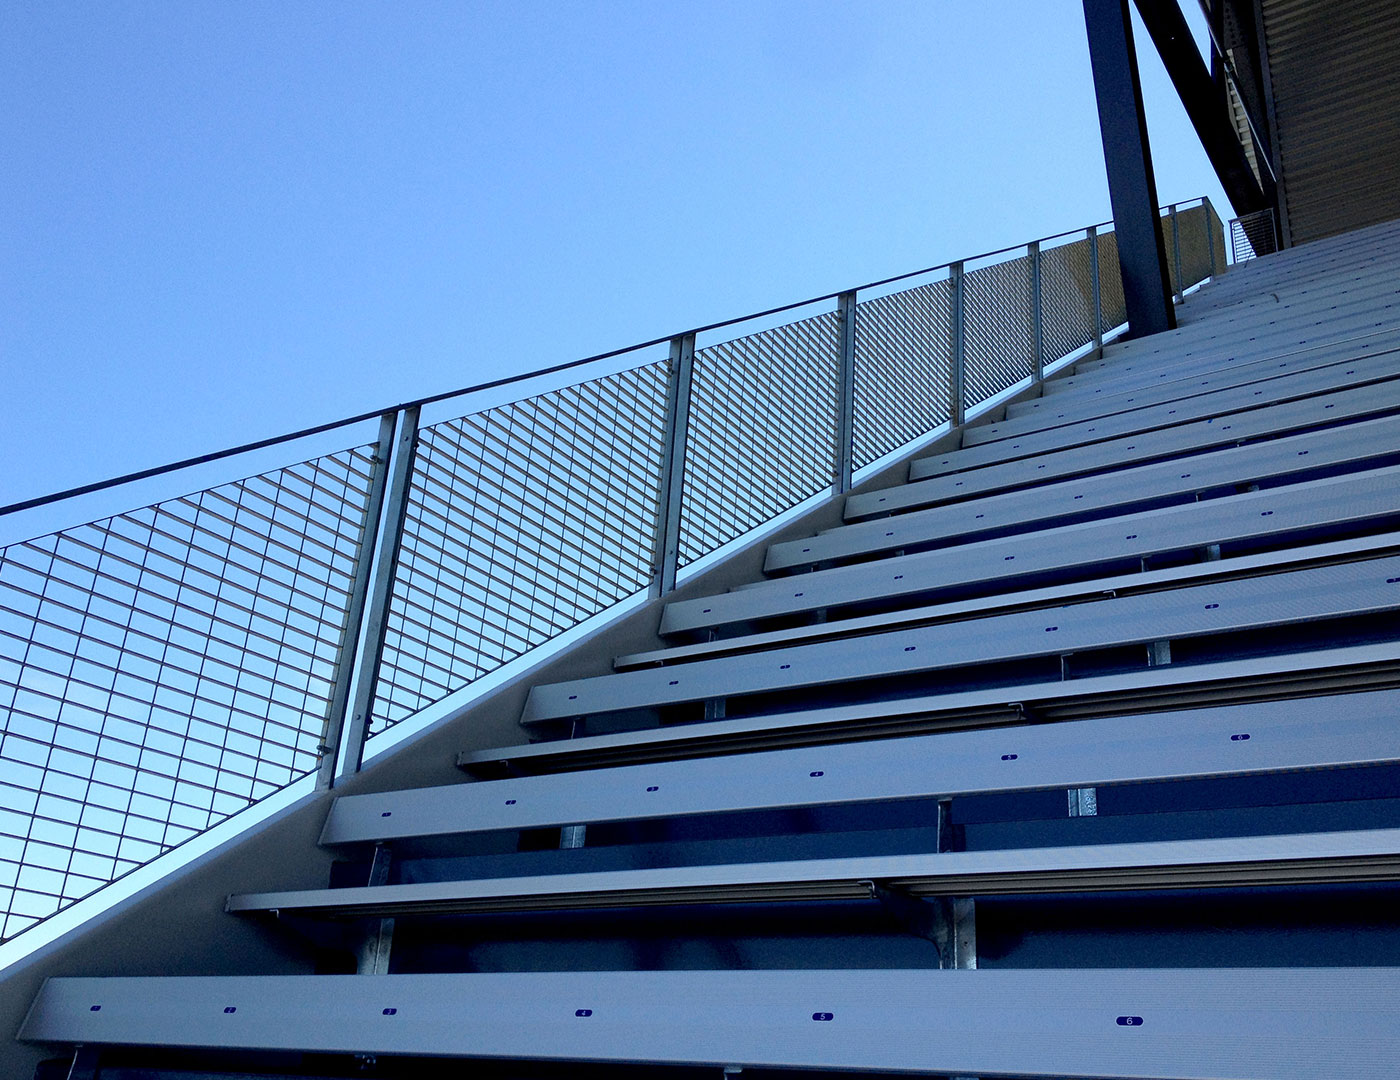 Post supported galvanized steel mesh railing